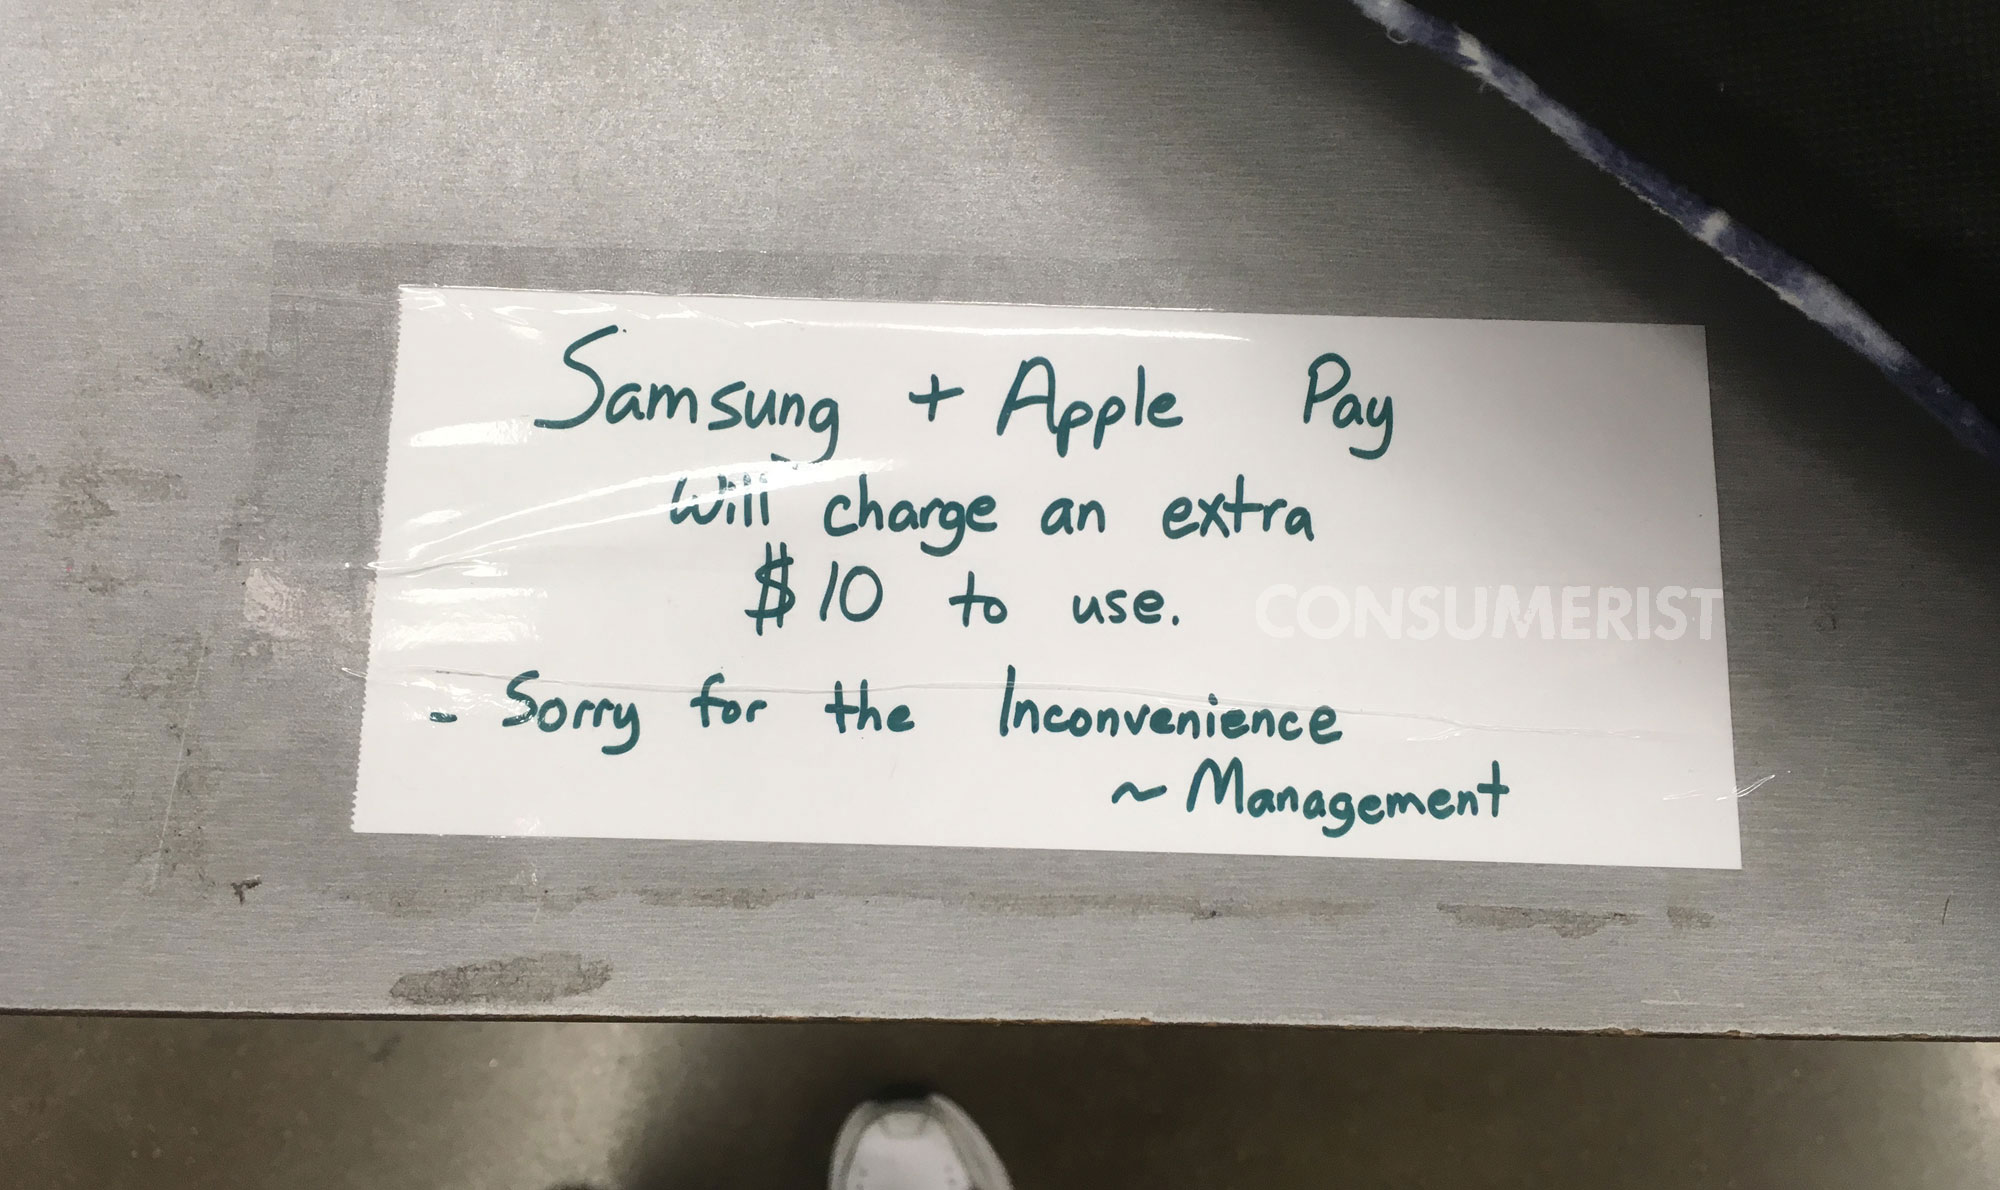 Why Did This Store Falsely Claim There Was A $10 Fee For Apple Pay Or Samsung Pay?